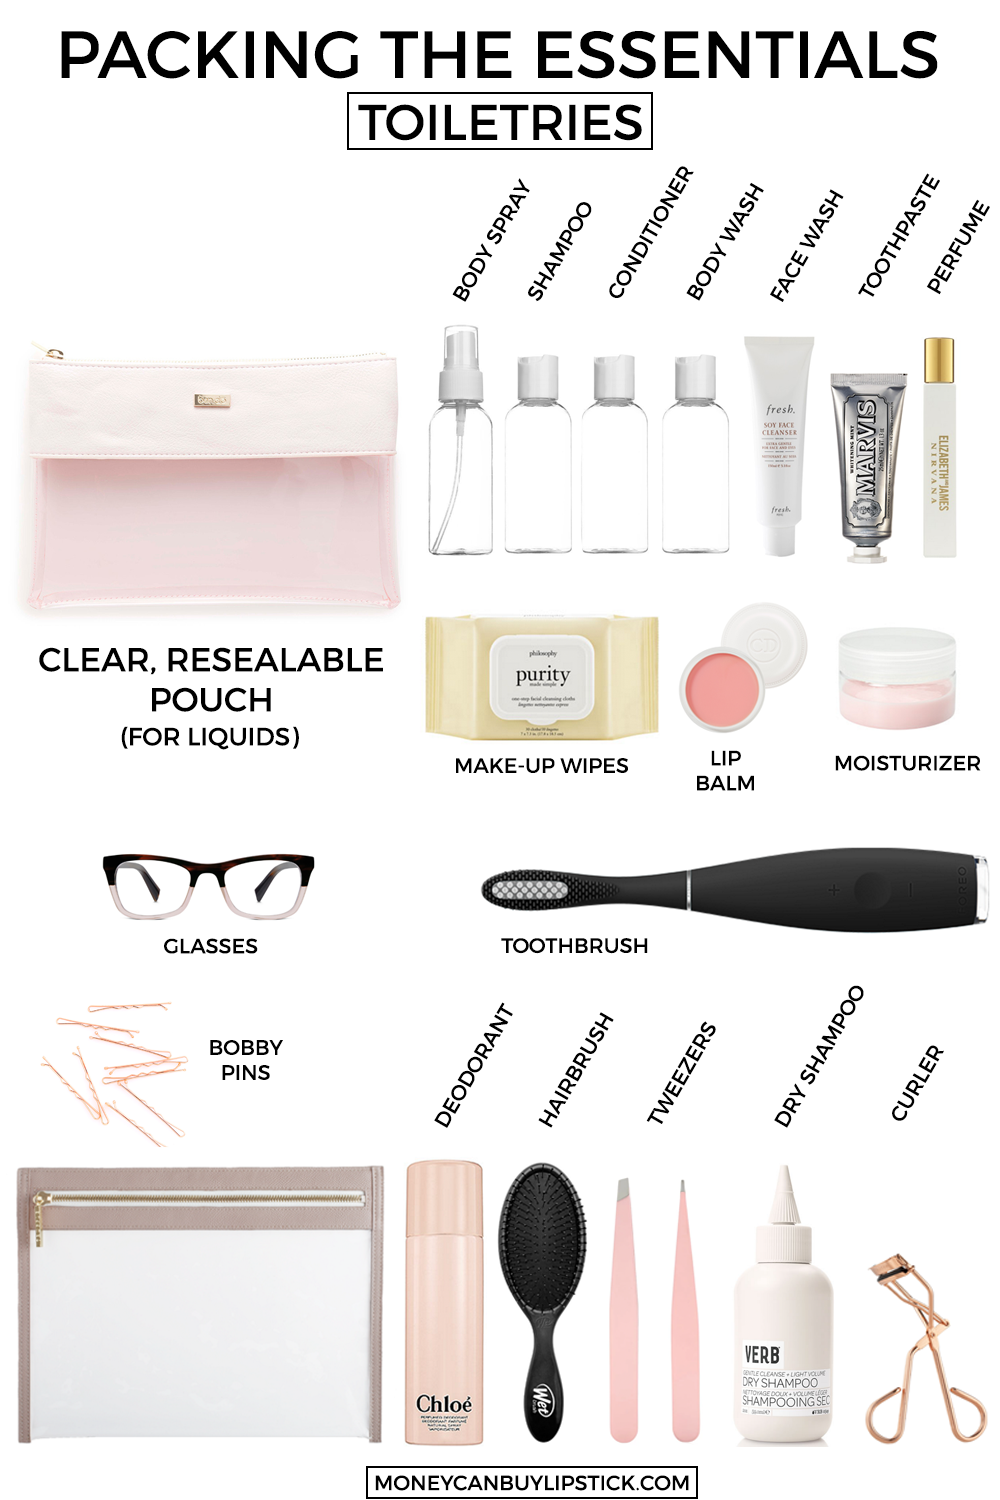 d364f2c8bd What To Pack In Your Toiletry Bag. Vacation Toiletries. Packing toiletries.  Vacation essentials. Packing for vacation. What to pack for vacation on  Money ...